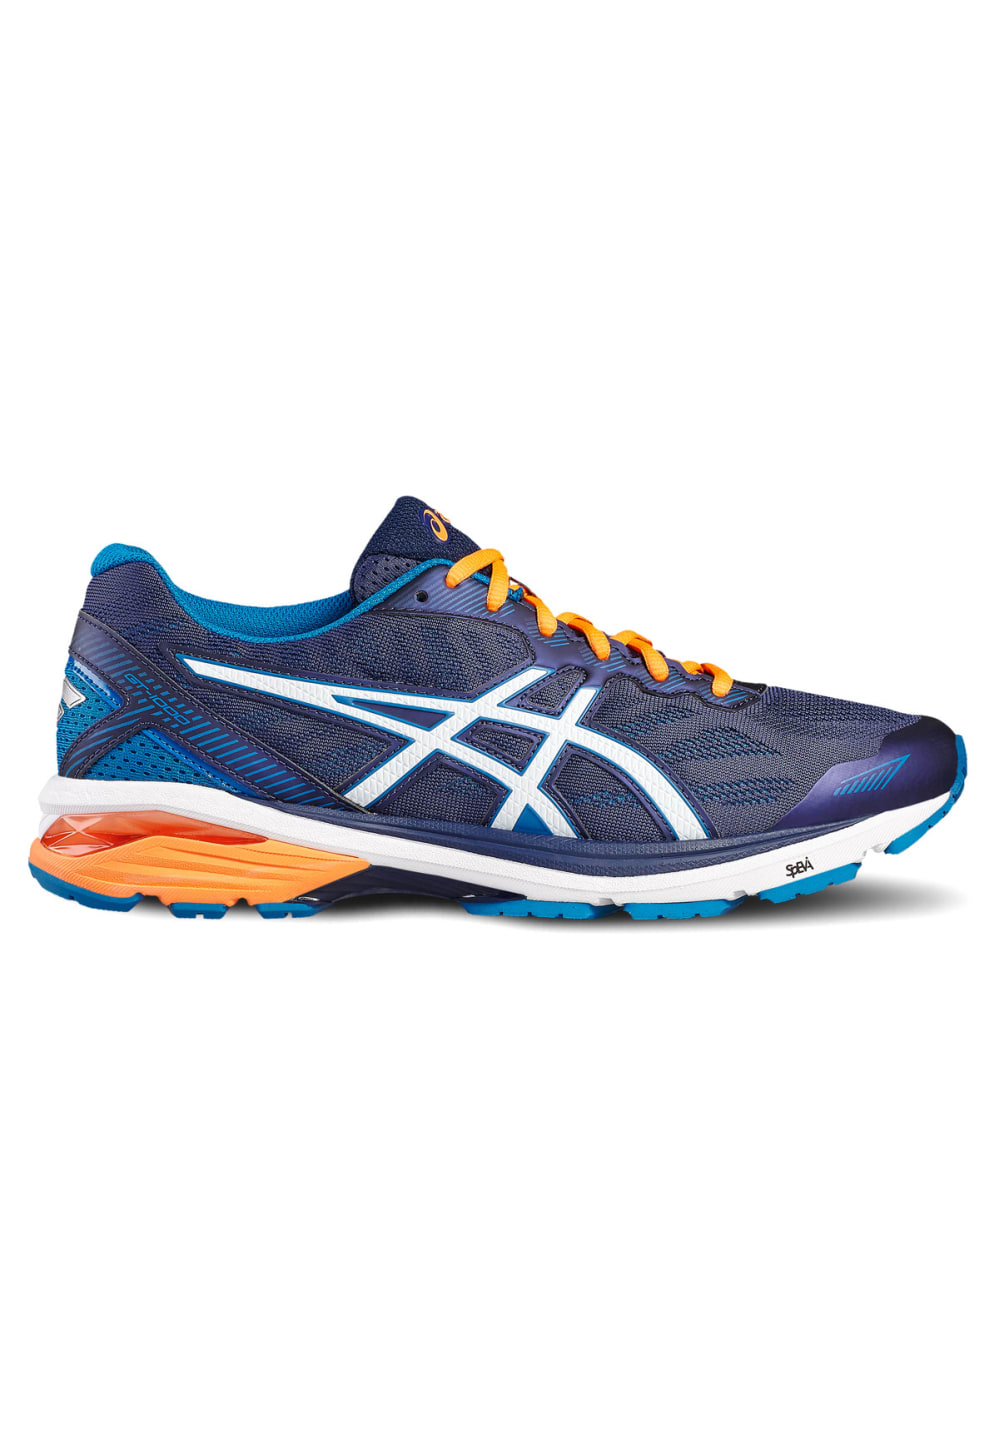 asics gt 1000 5 chaussures running pour homme noir 21run. Black Bedroom Furniture Sets. Home Design Ideas